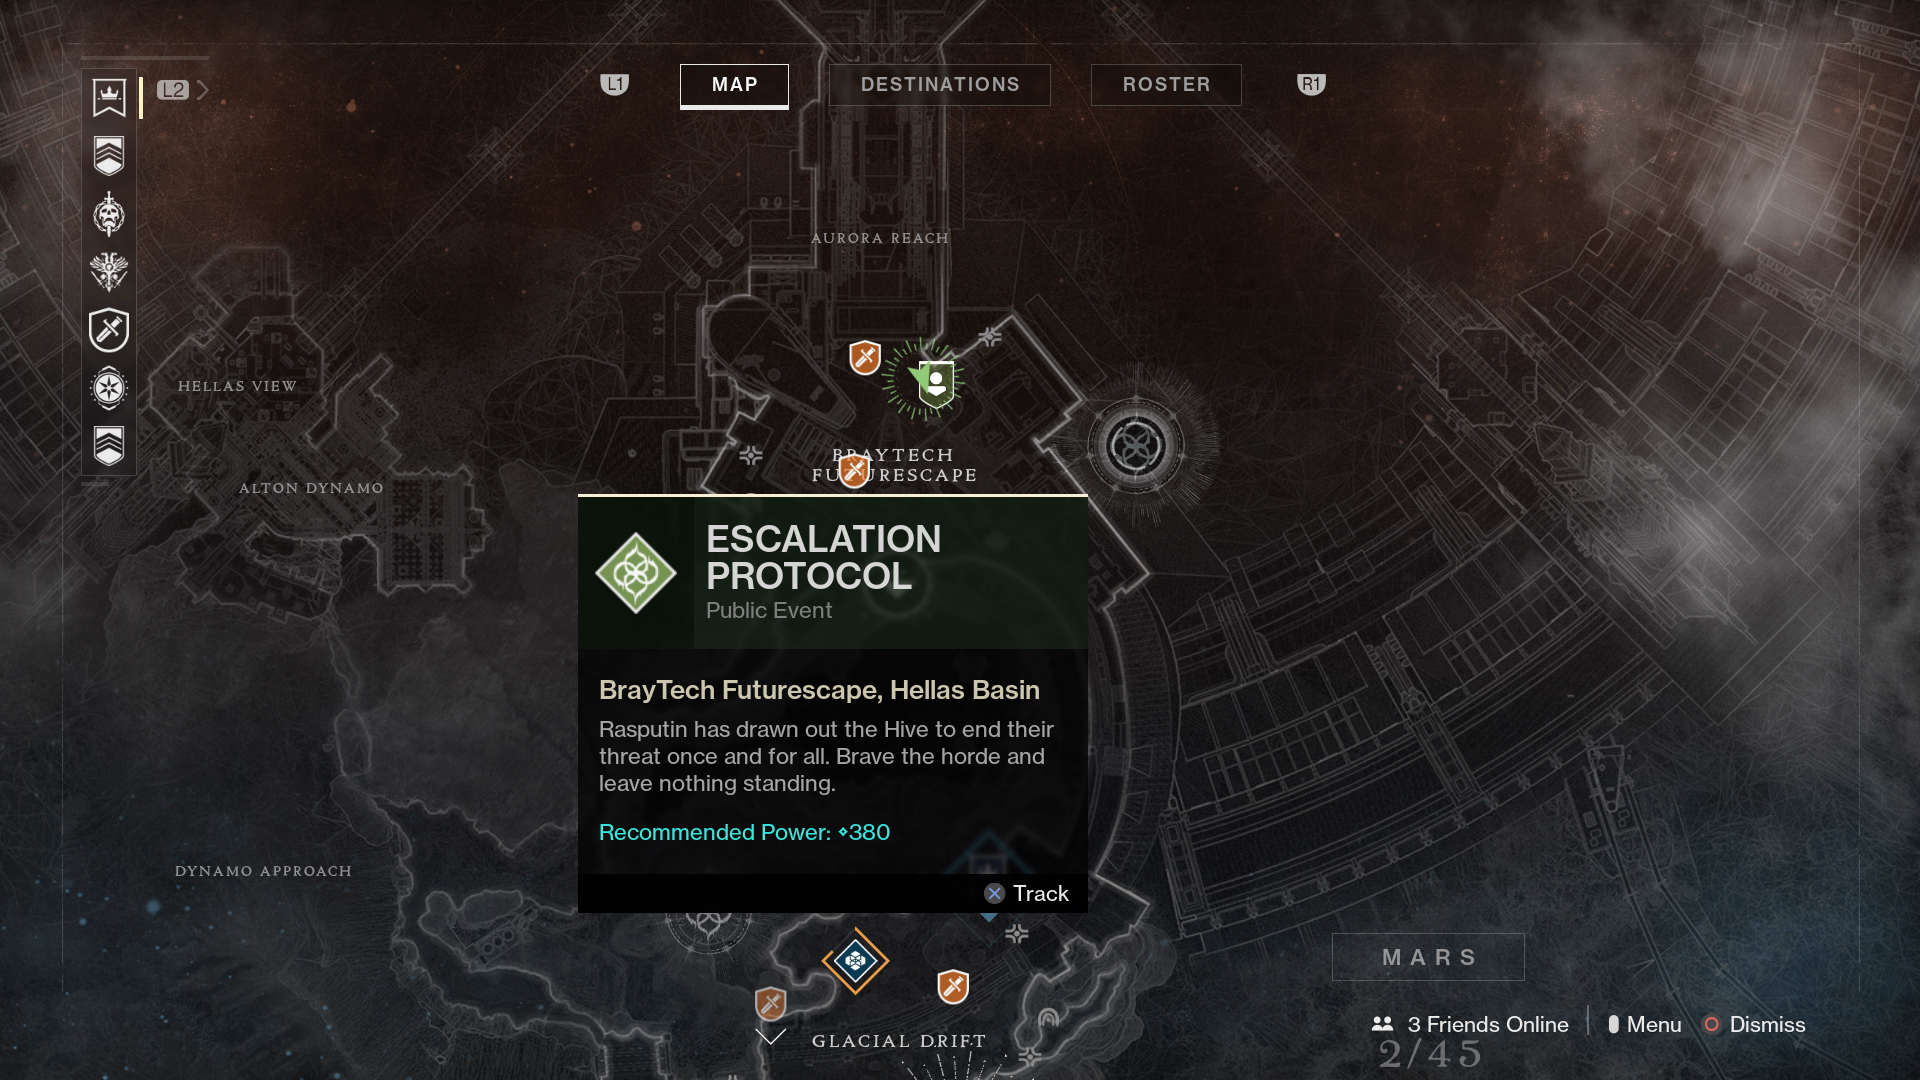 Destiny 2 Escalation Protocol Guide - Complete Walkthrough